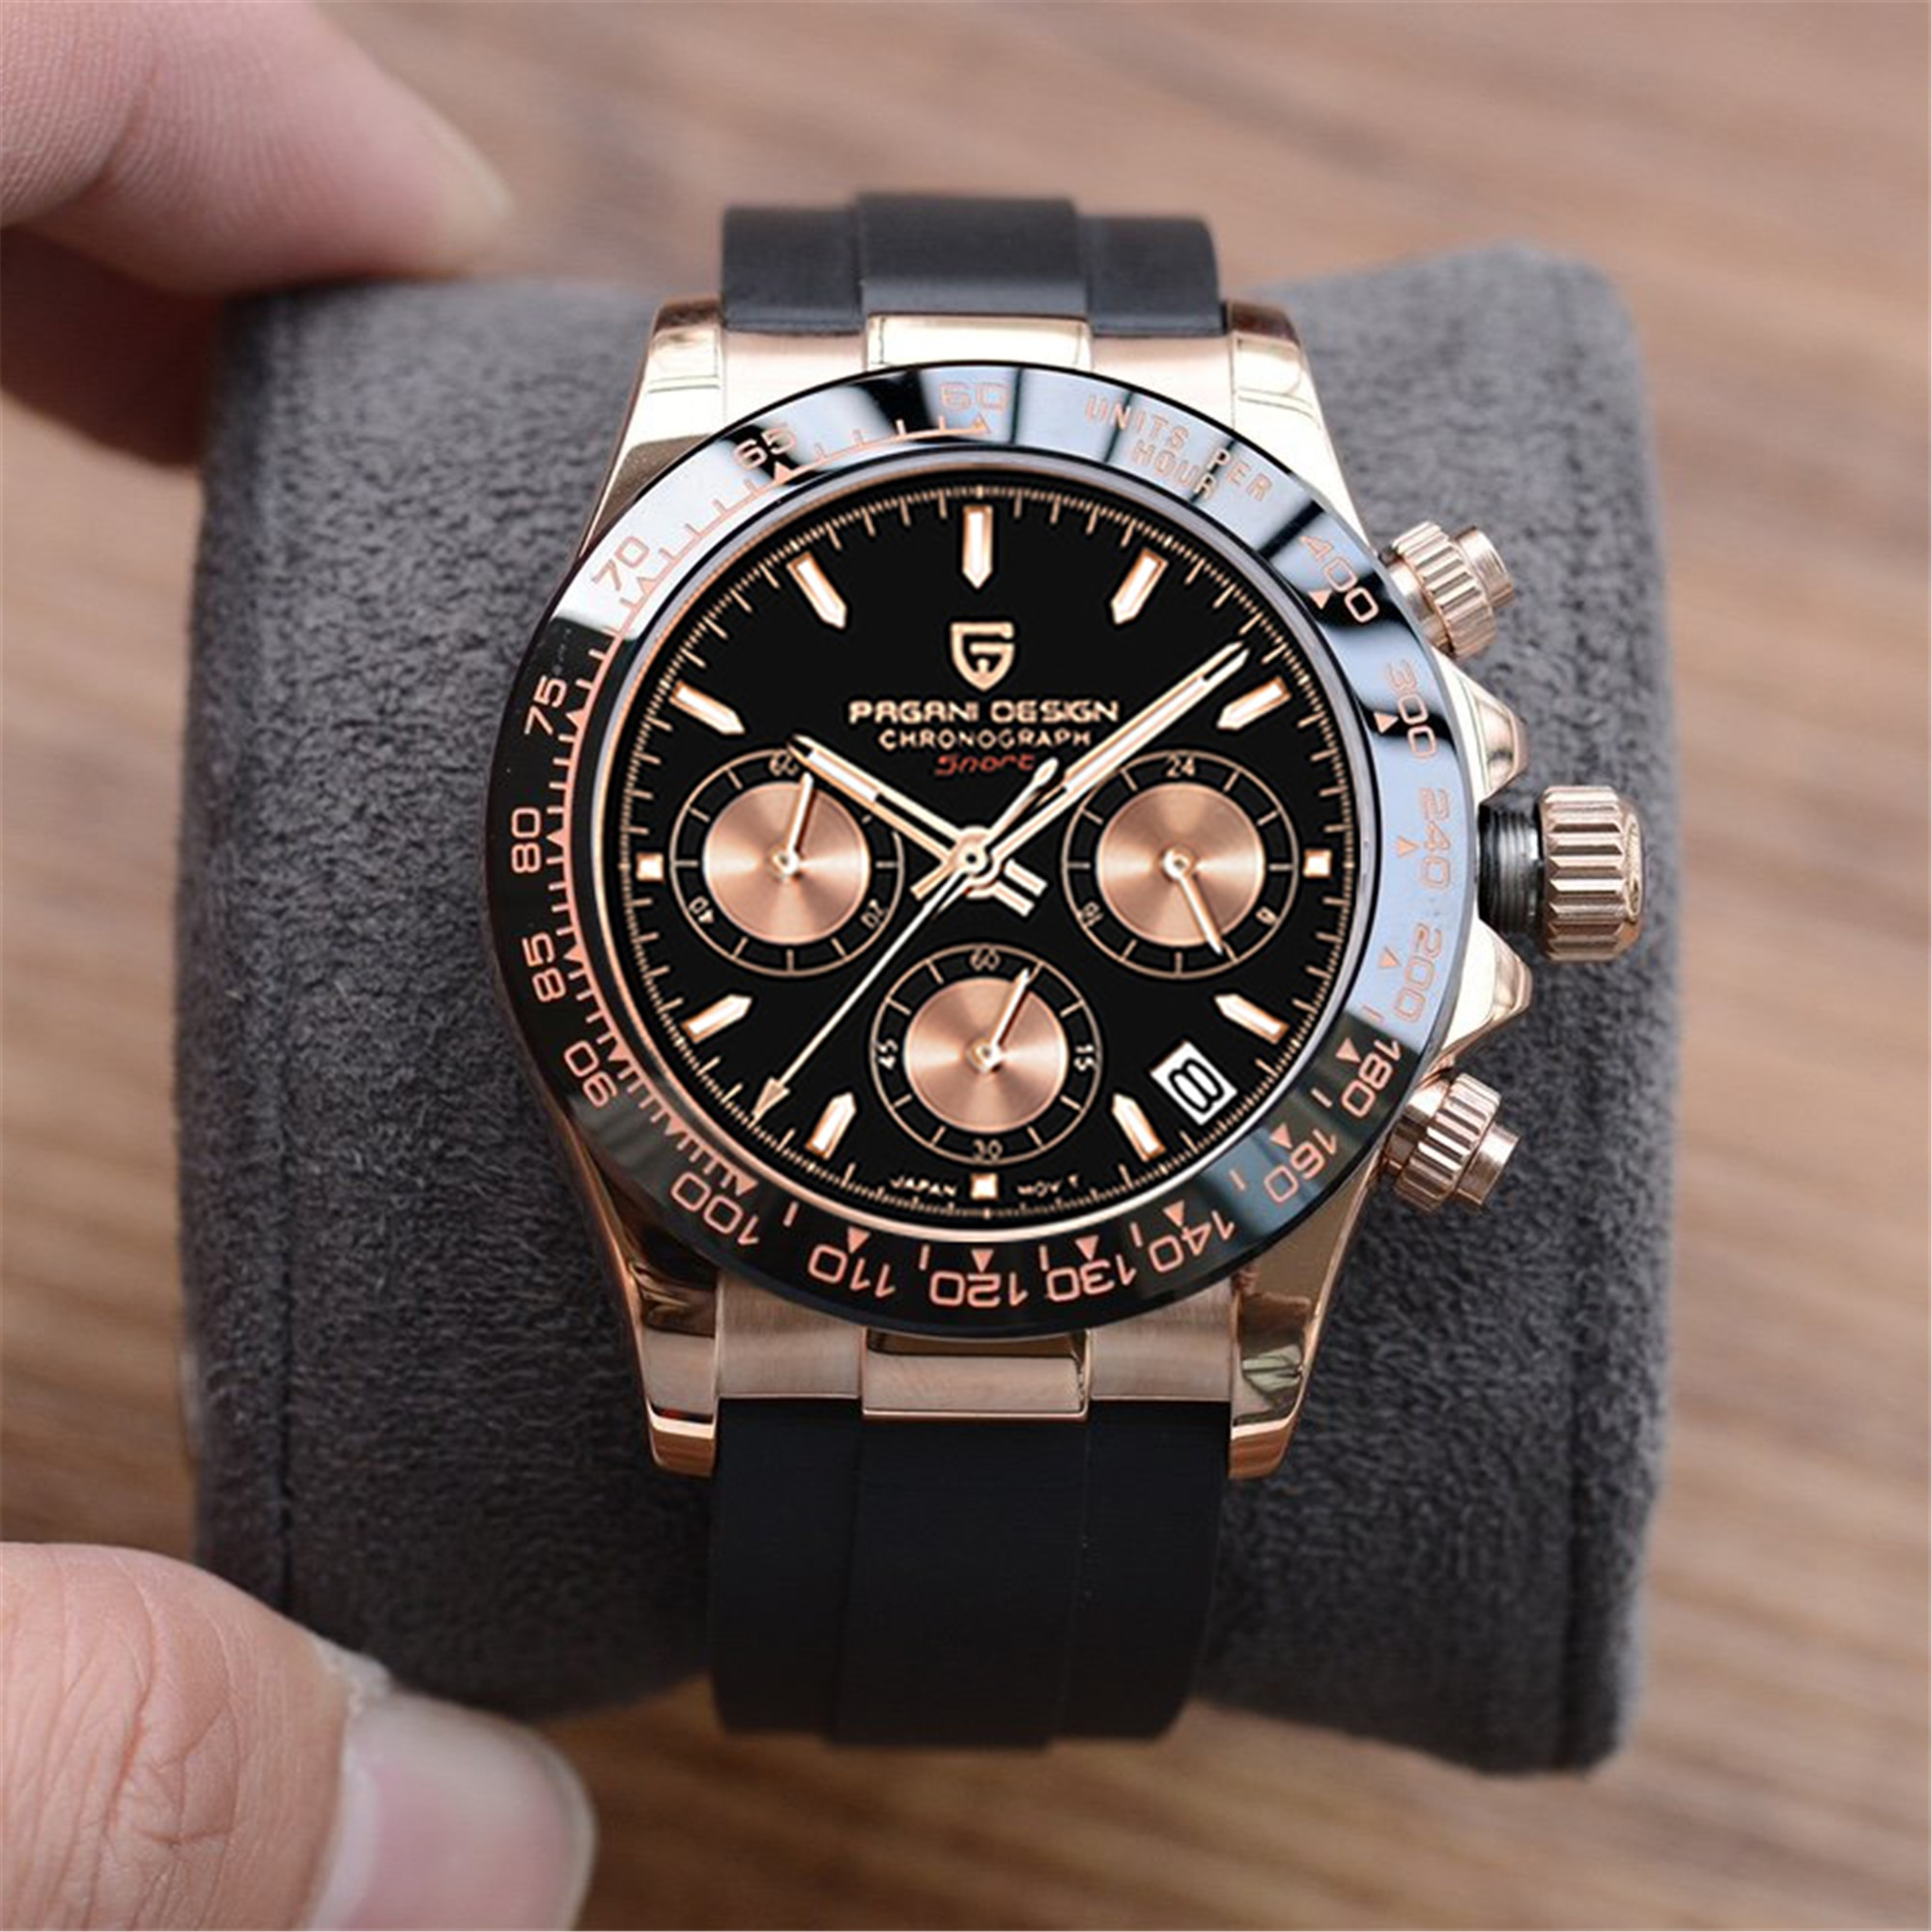 2021 New PAGANI Design Men Quartz Watches Japan VK63 Clock Automatic Date Men Luxury Chronograph Wri